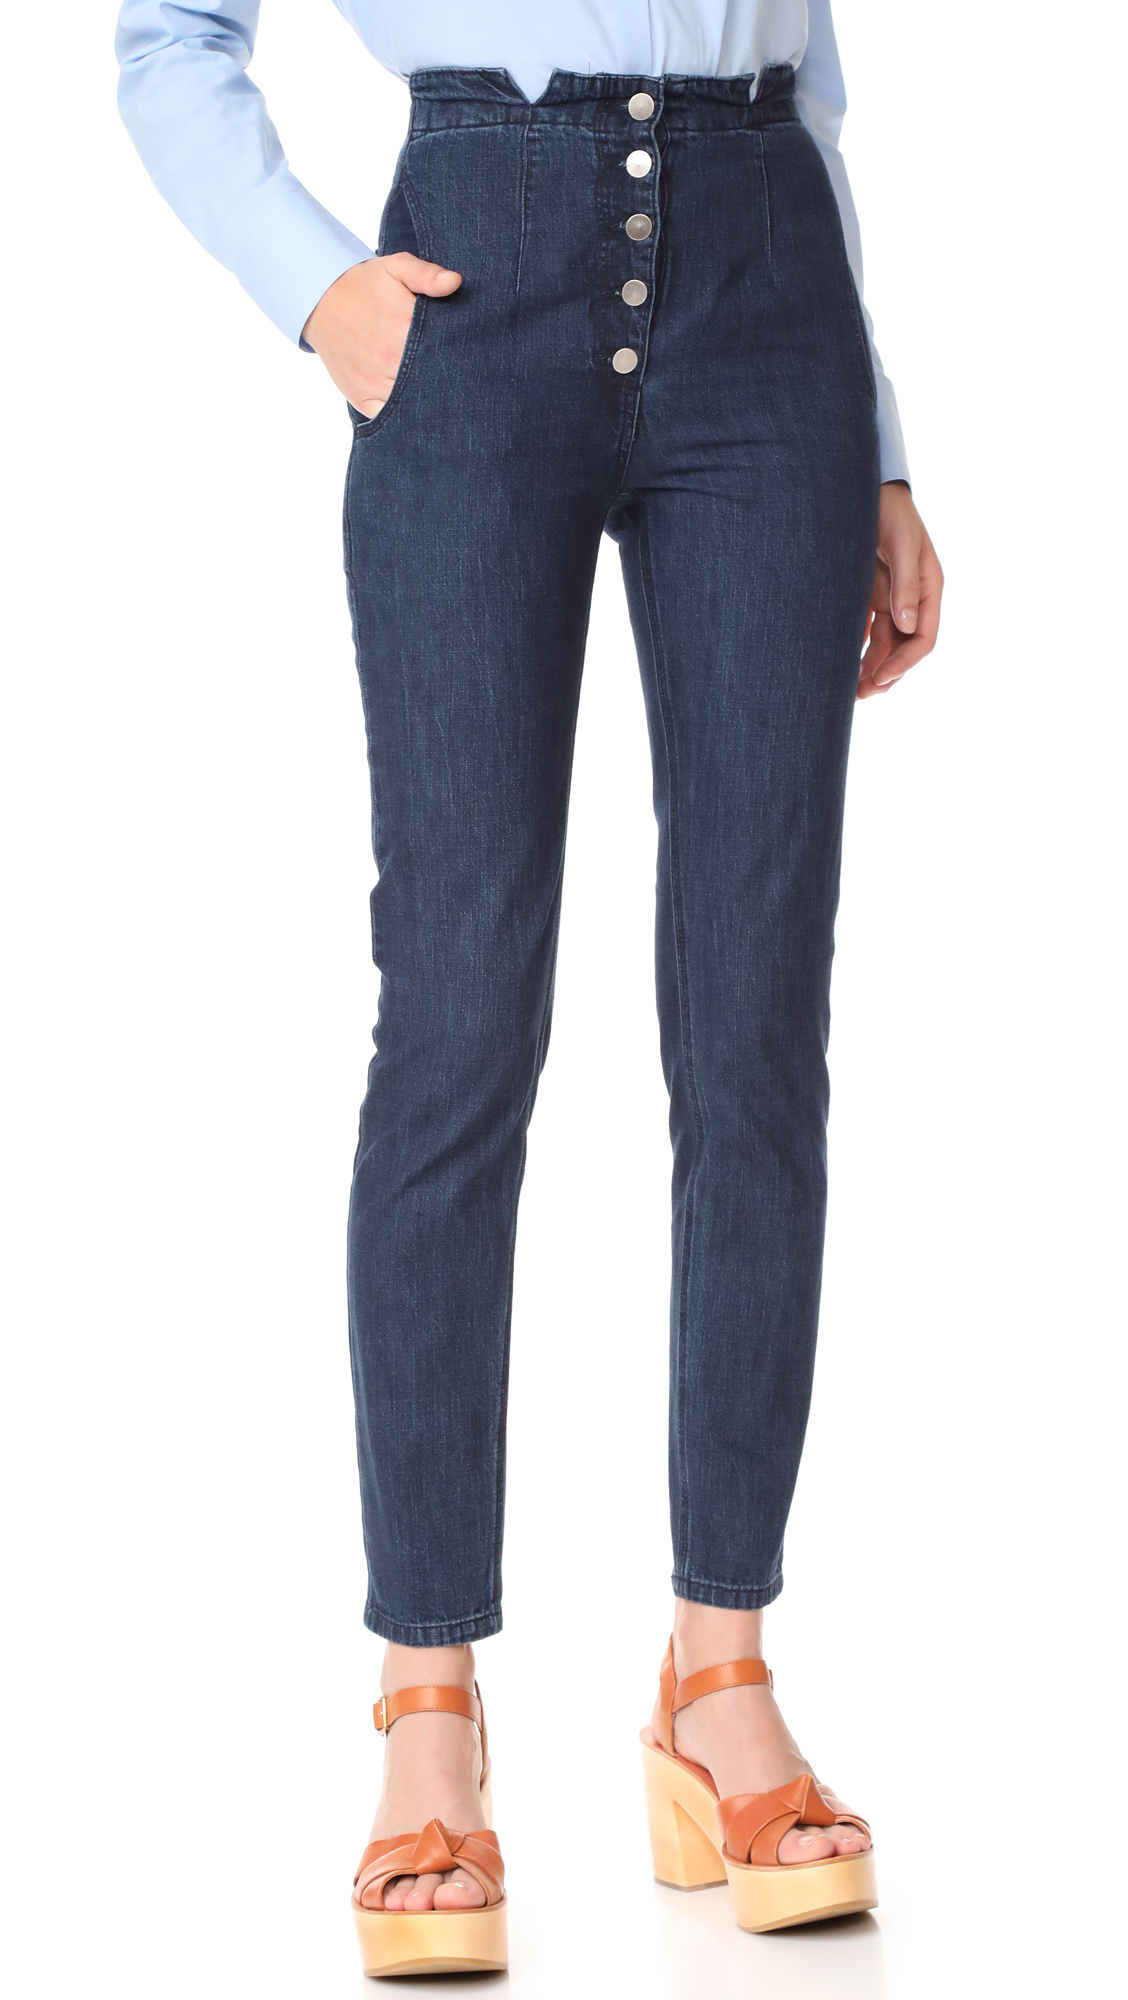 Rachel Comey Dock Jeans - Ink Wash